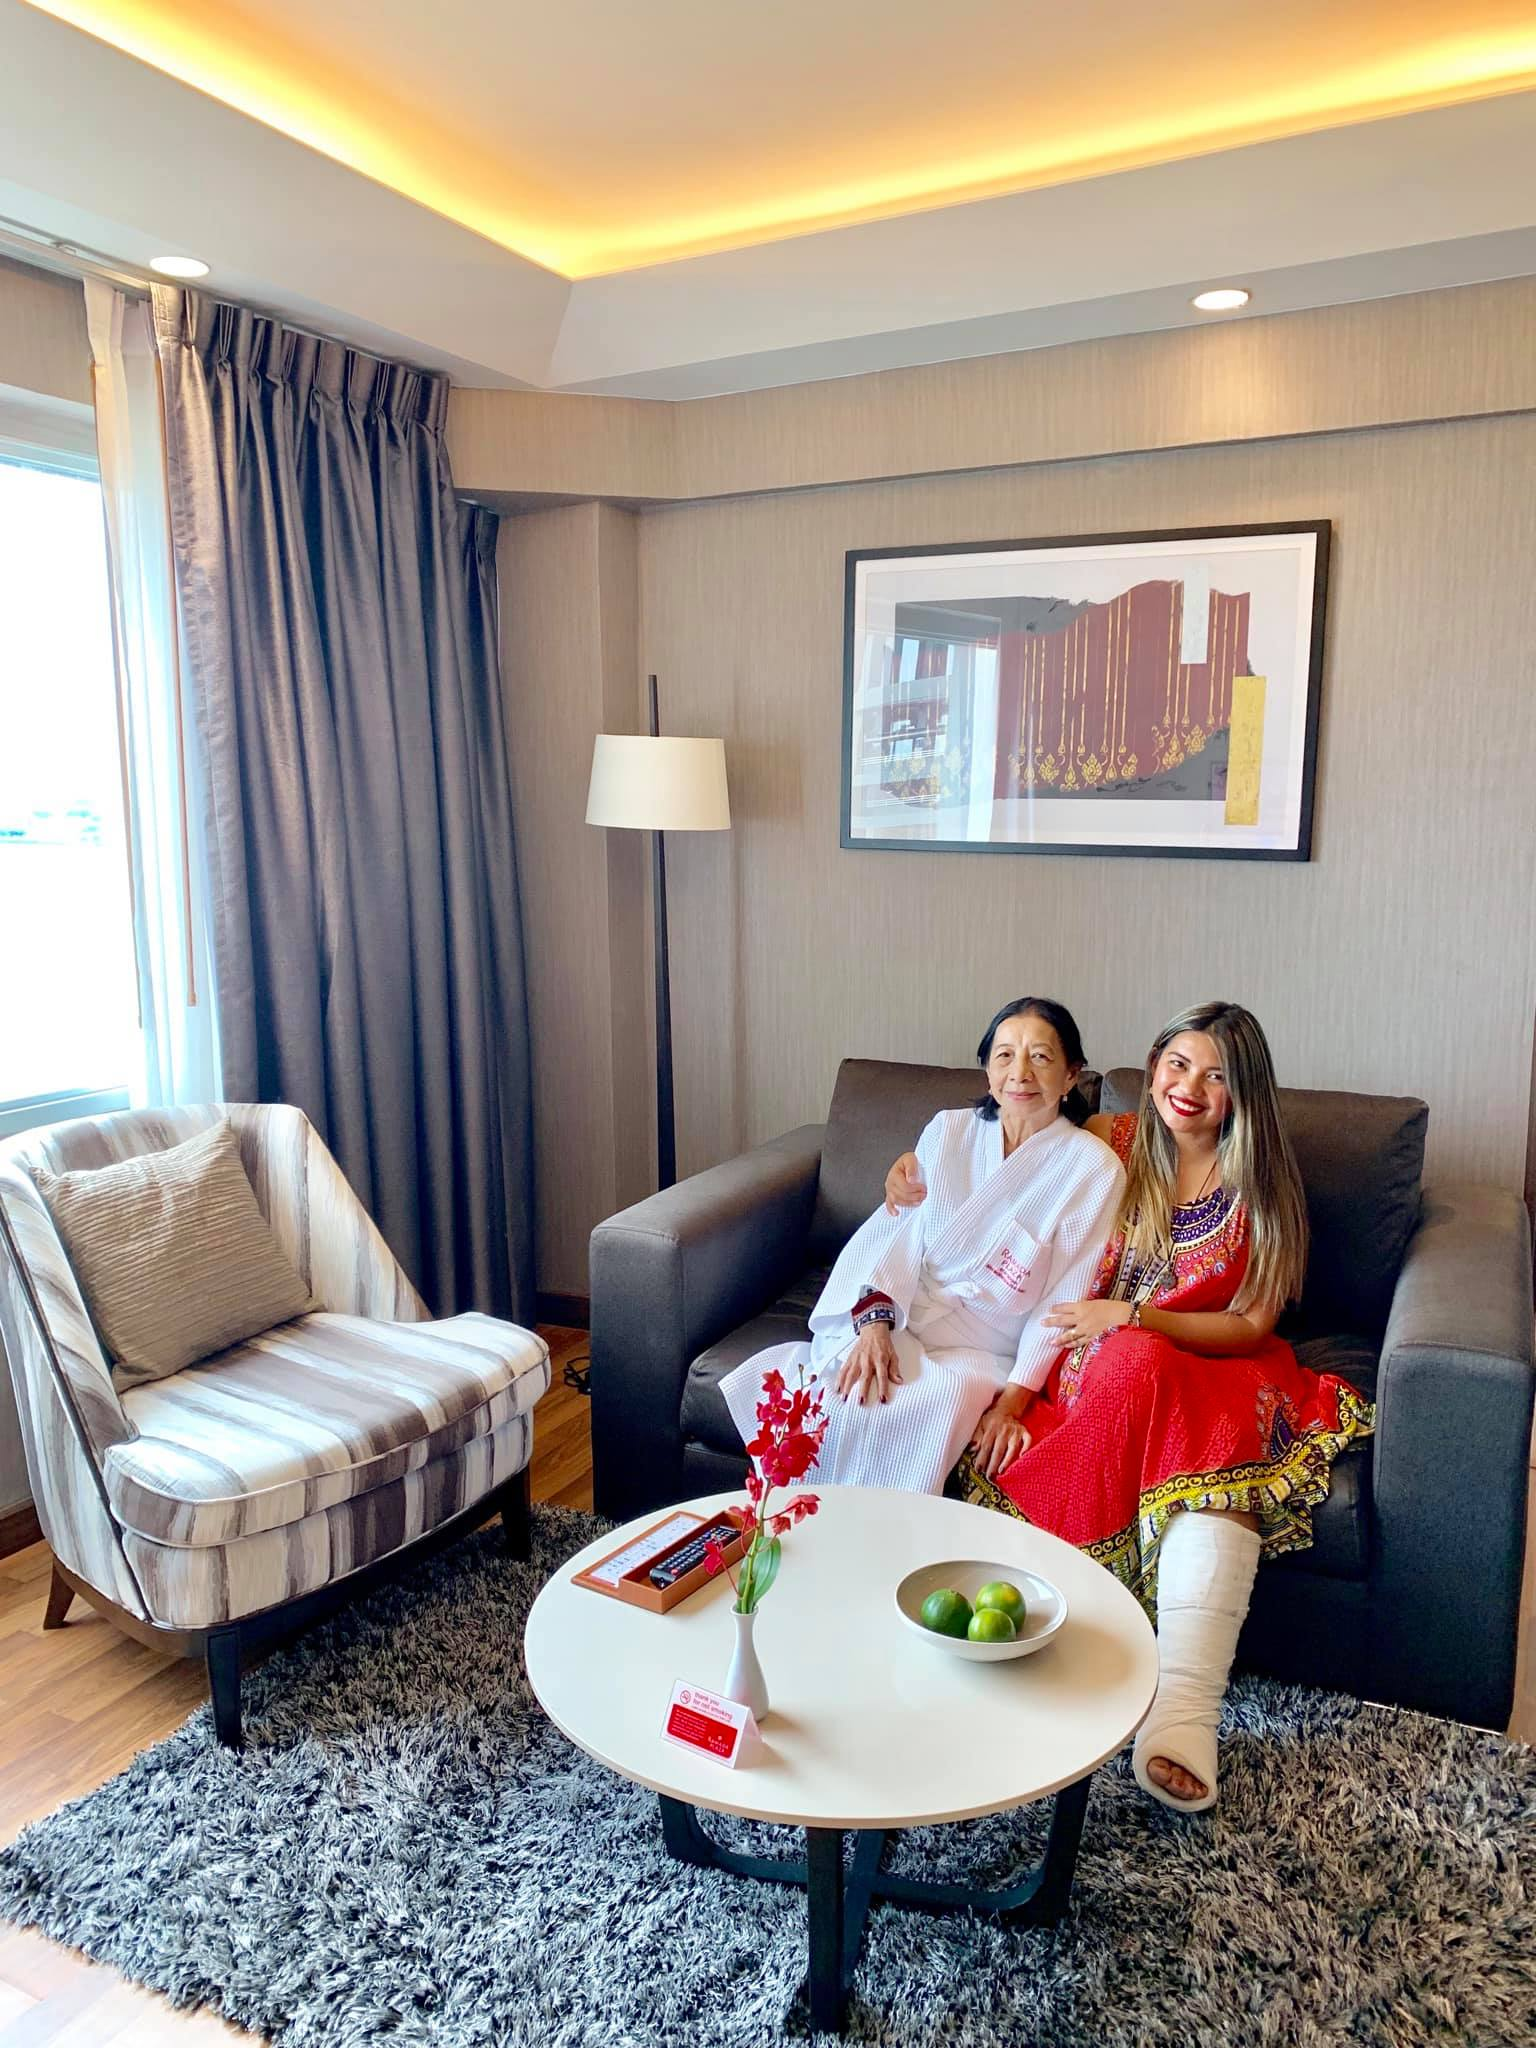 Our Luxurious Staycation At Ramada Plaza In Bangkok And Our Tour With Tinggly Experiences1